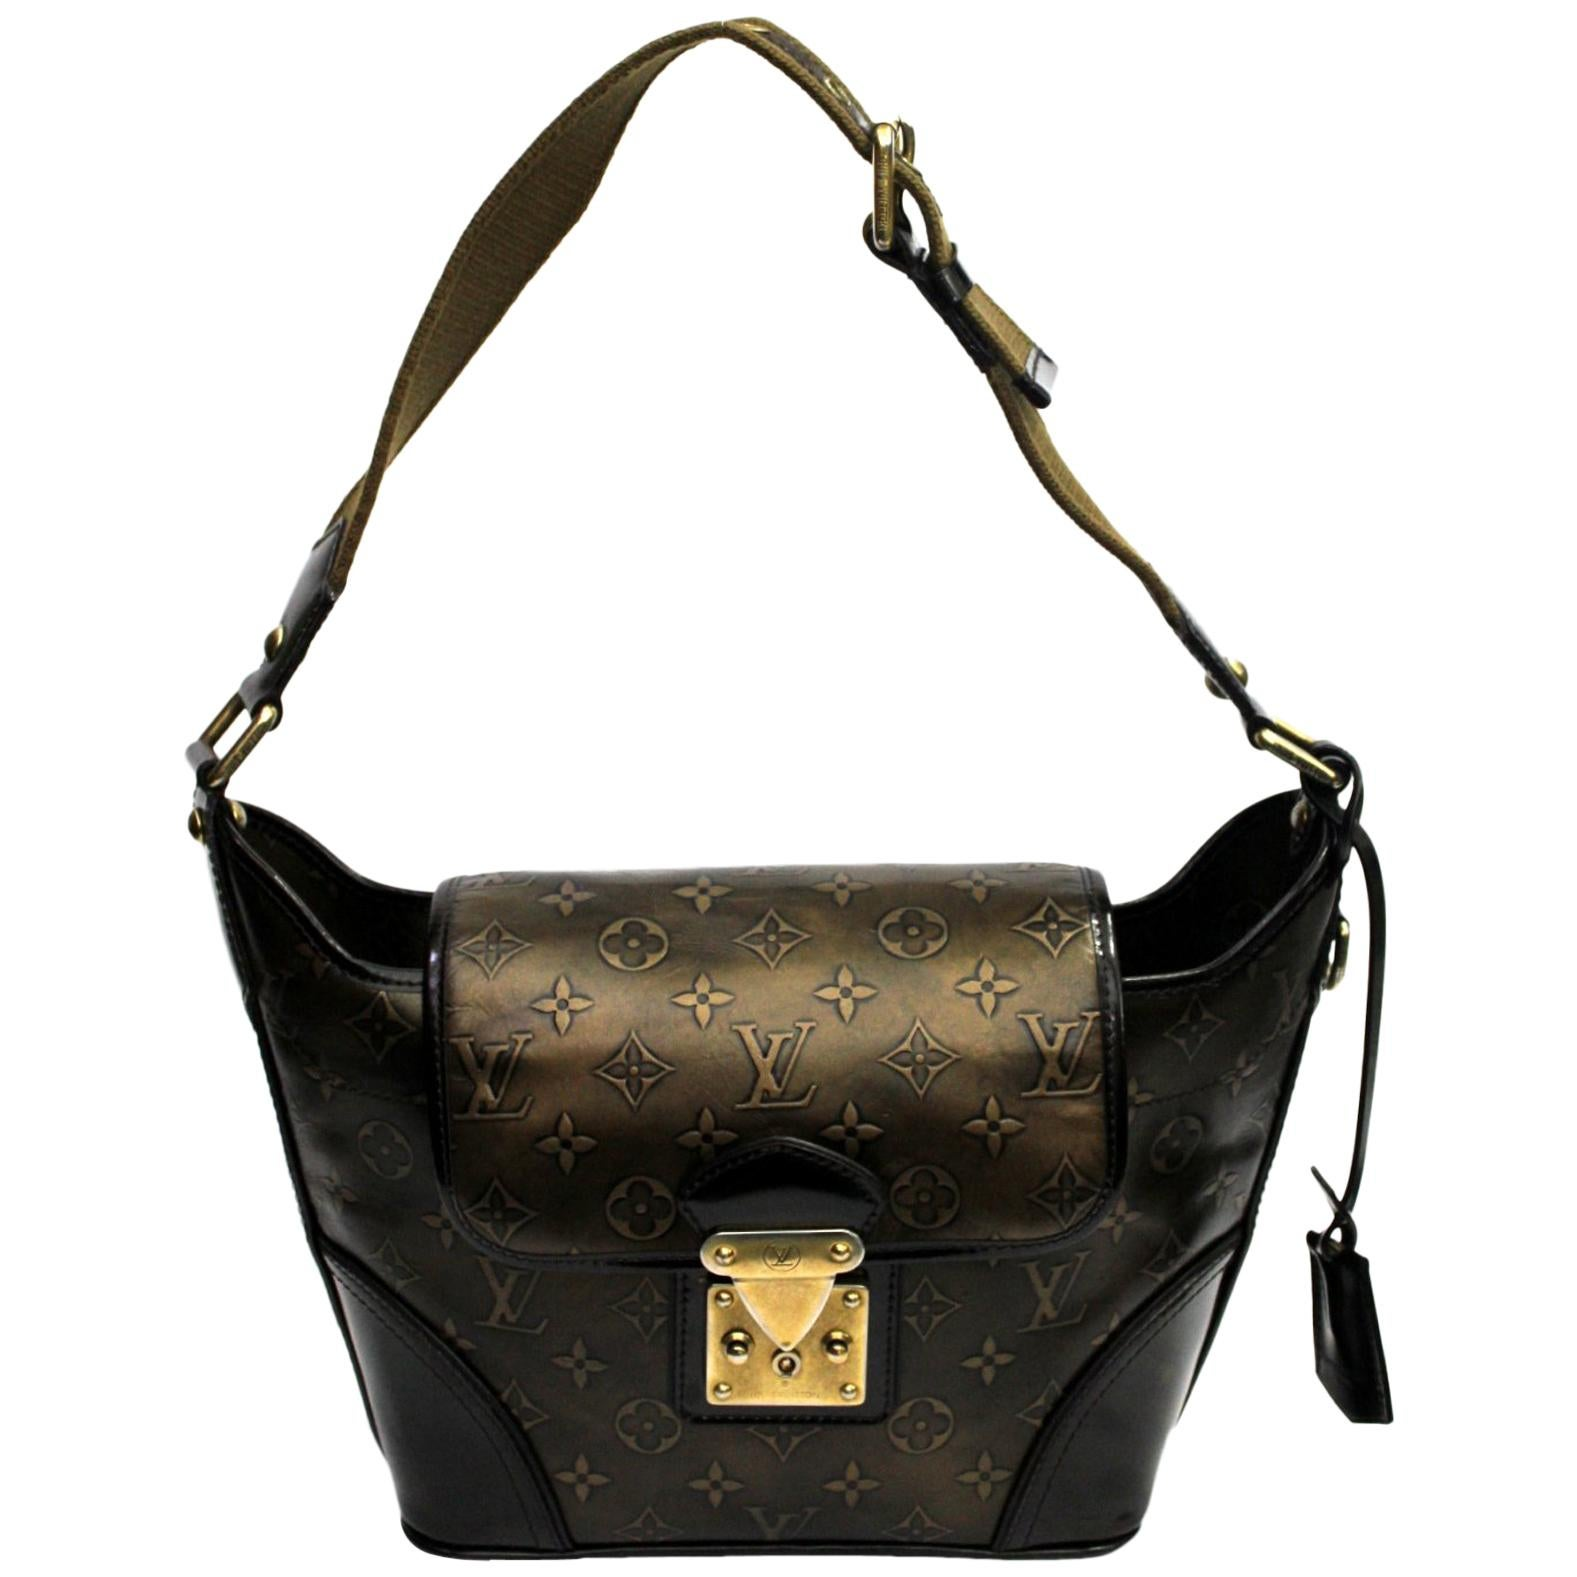 LOUIS VUITTON Limited Edition Bronze Monogram Embossed Leather Sergent PM Bag